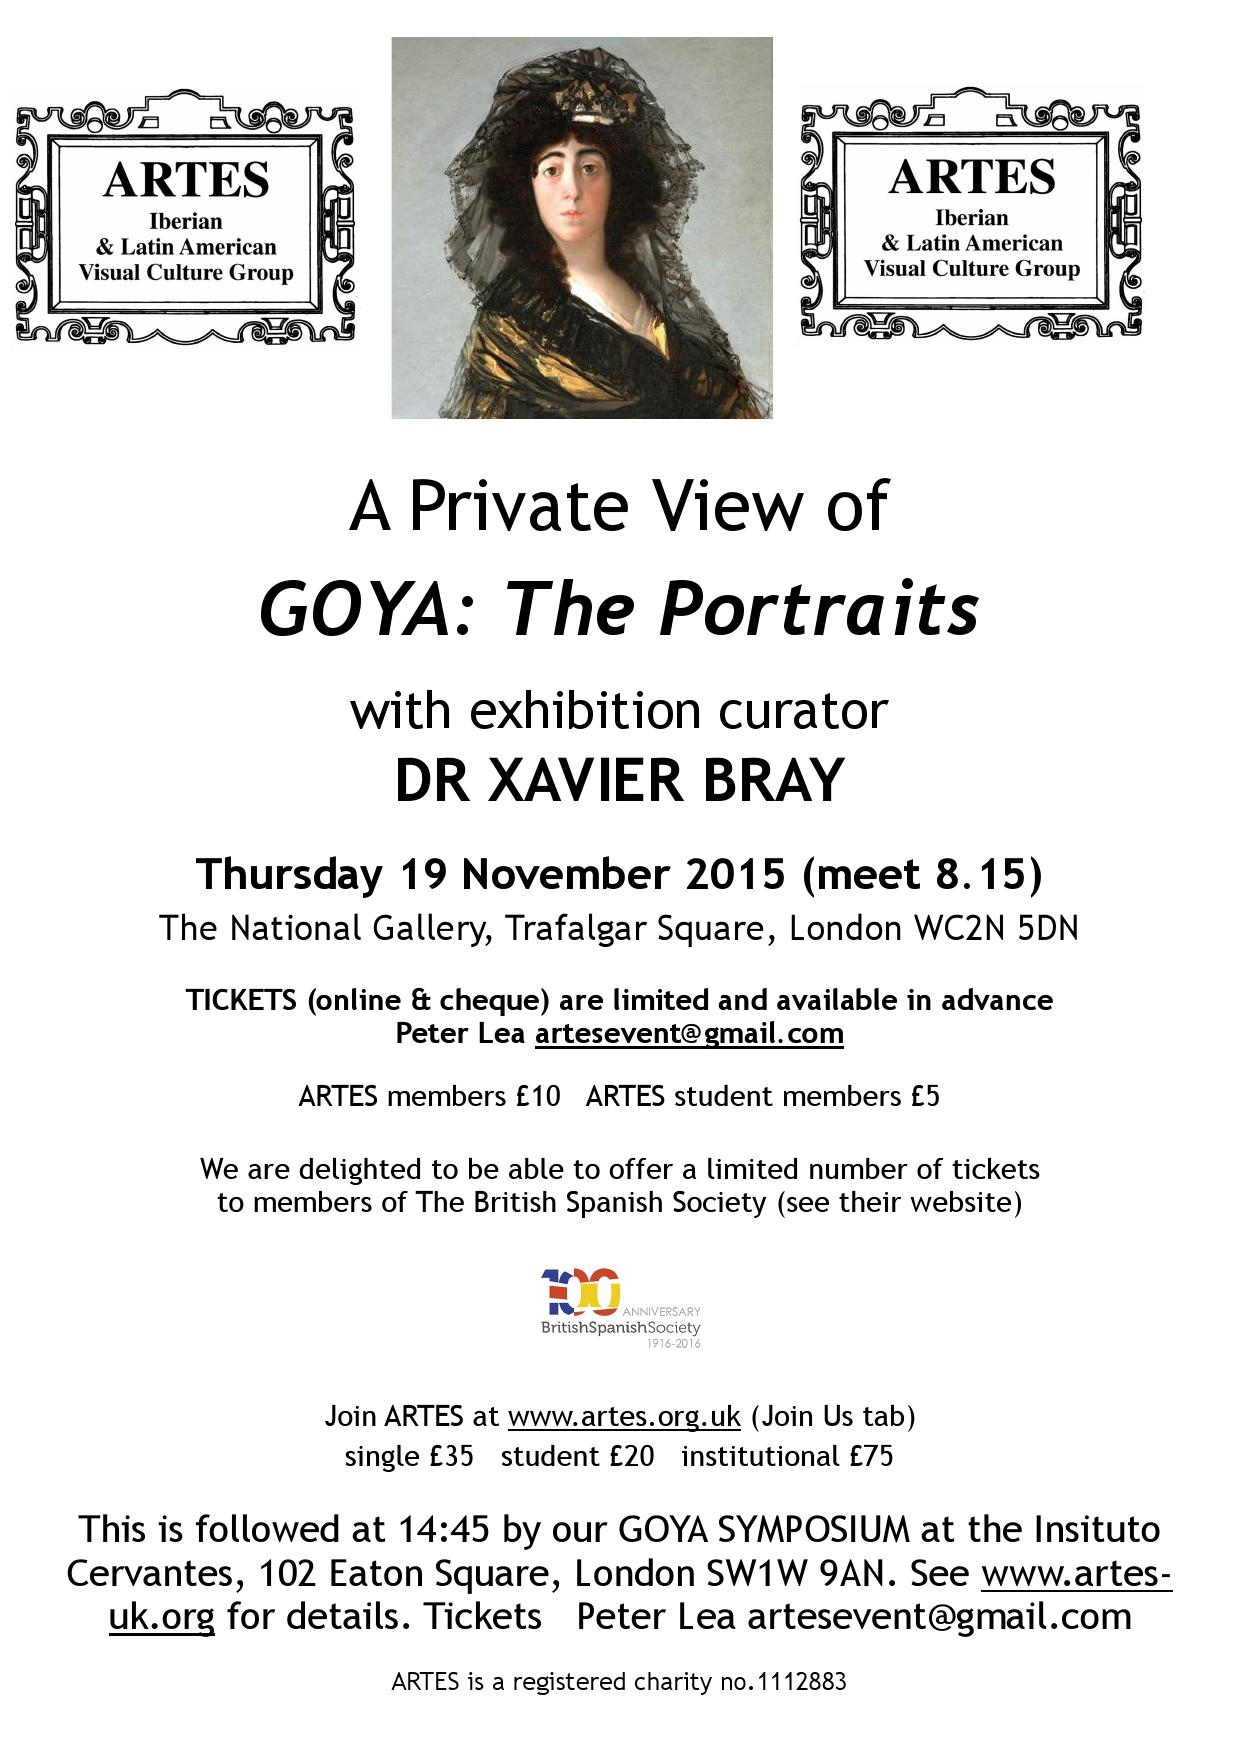 GOYA PV ARTES Members ME 4 OCT 2015